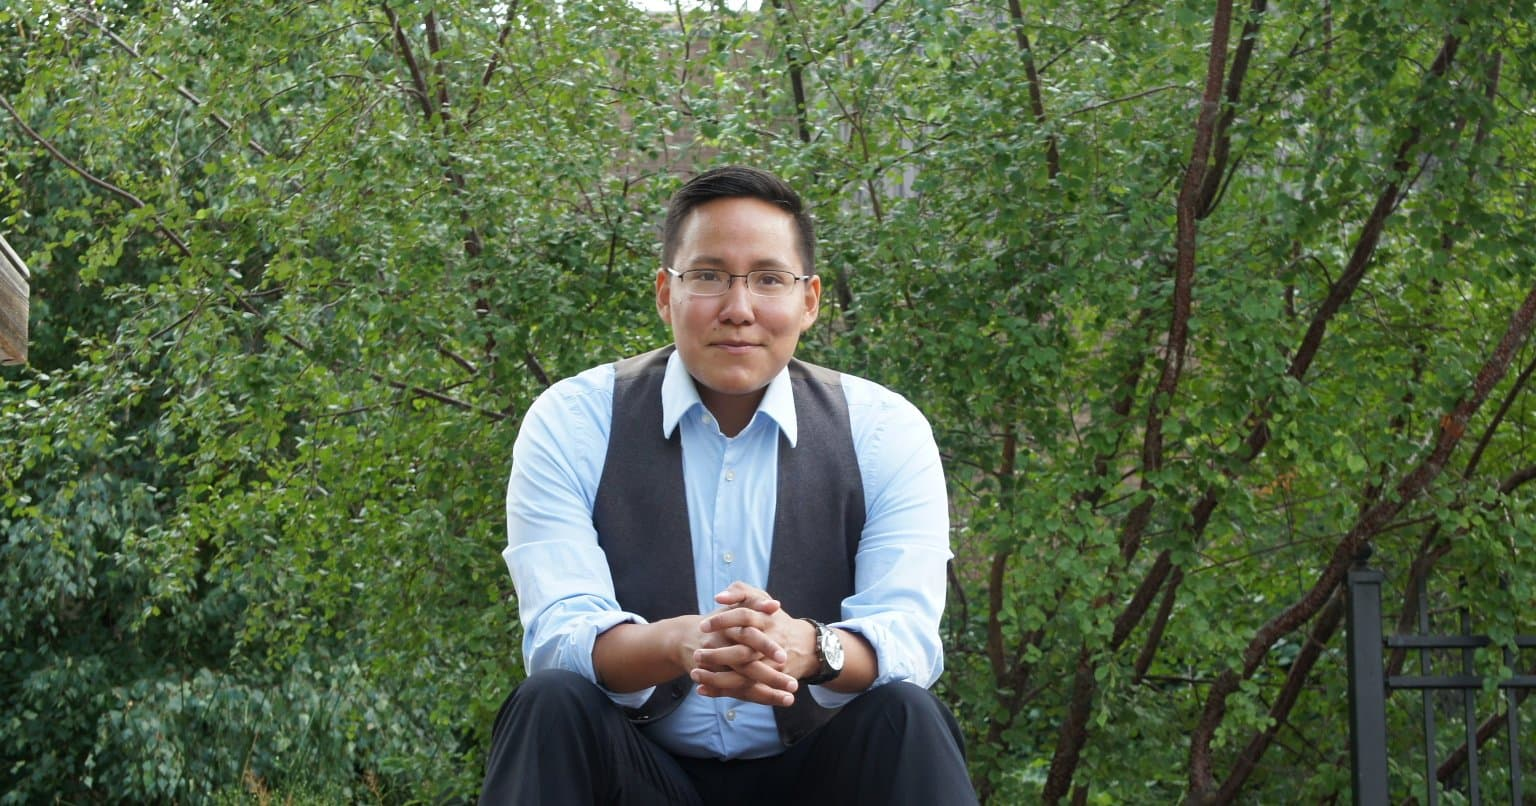 In the photo, a smiling Indigenous man sitting on stone steps wearing a button down shirt with his hands clasped on his knees.